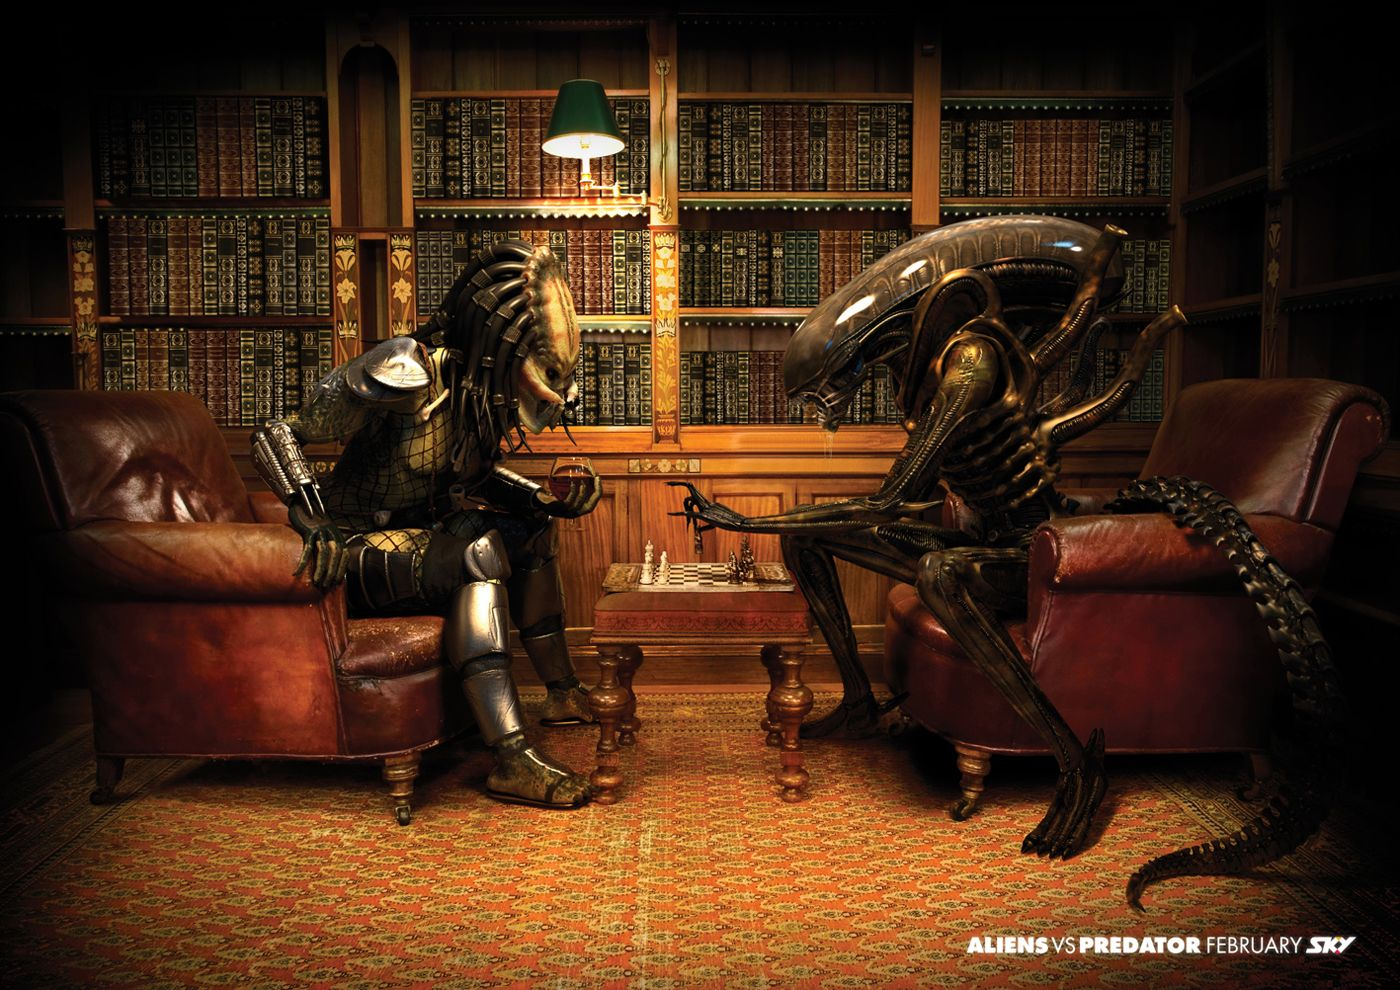 At this tattoo parlor, Alien and Predator are actually pretty good ...